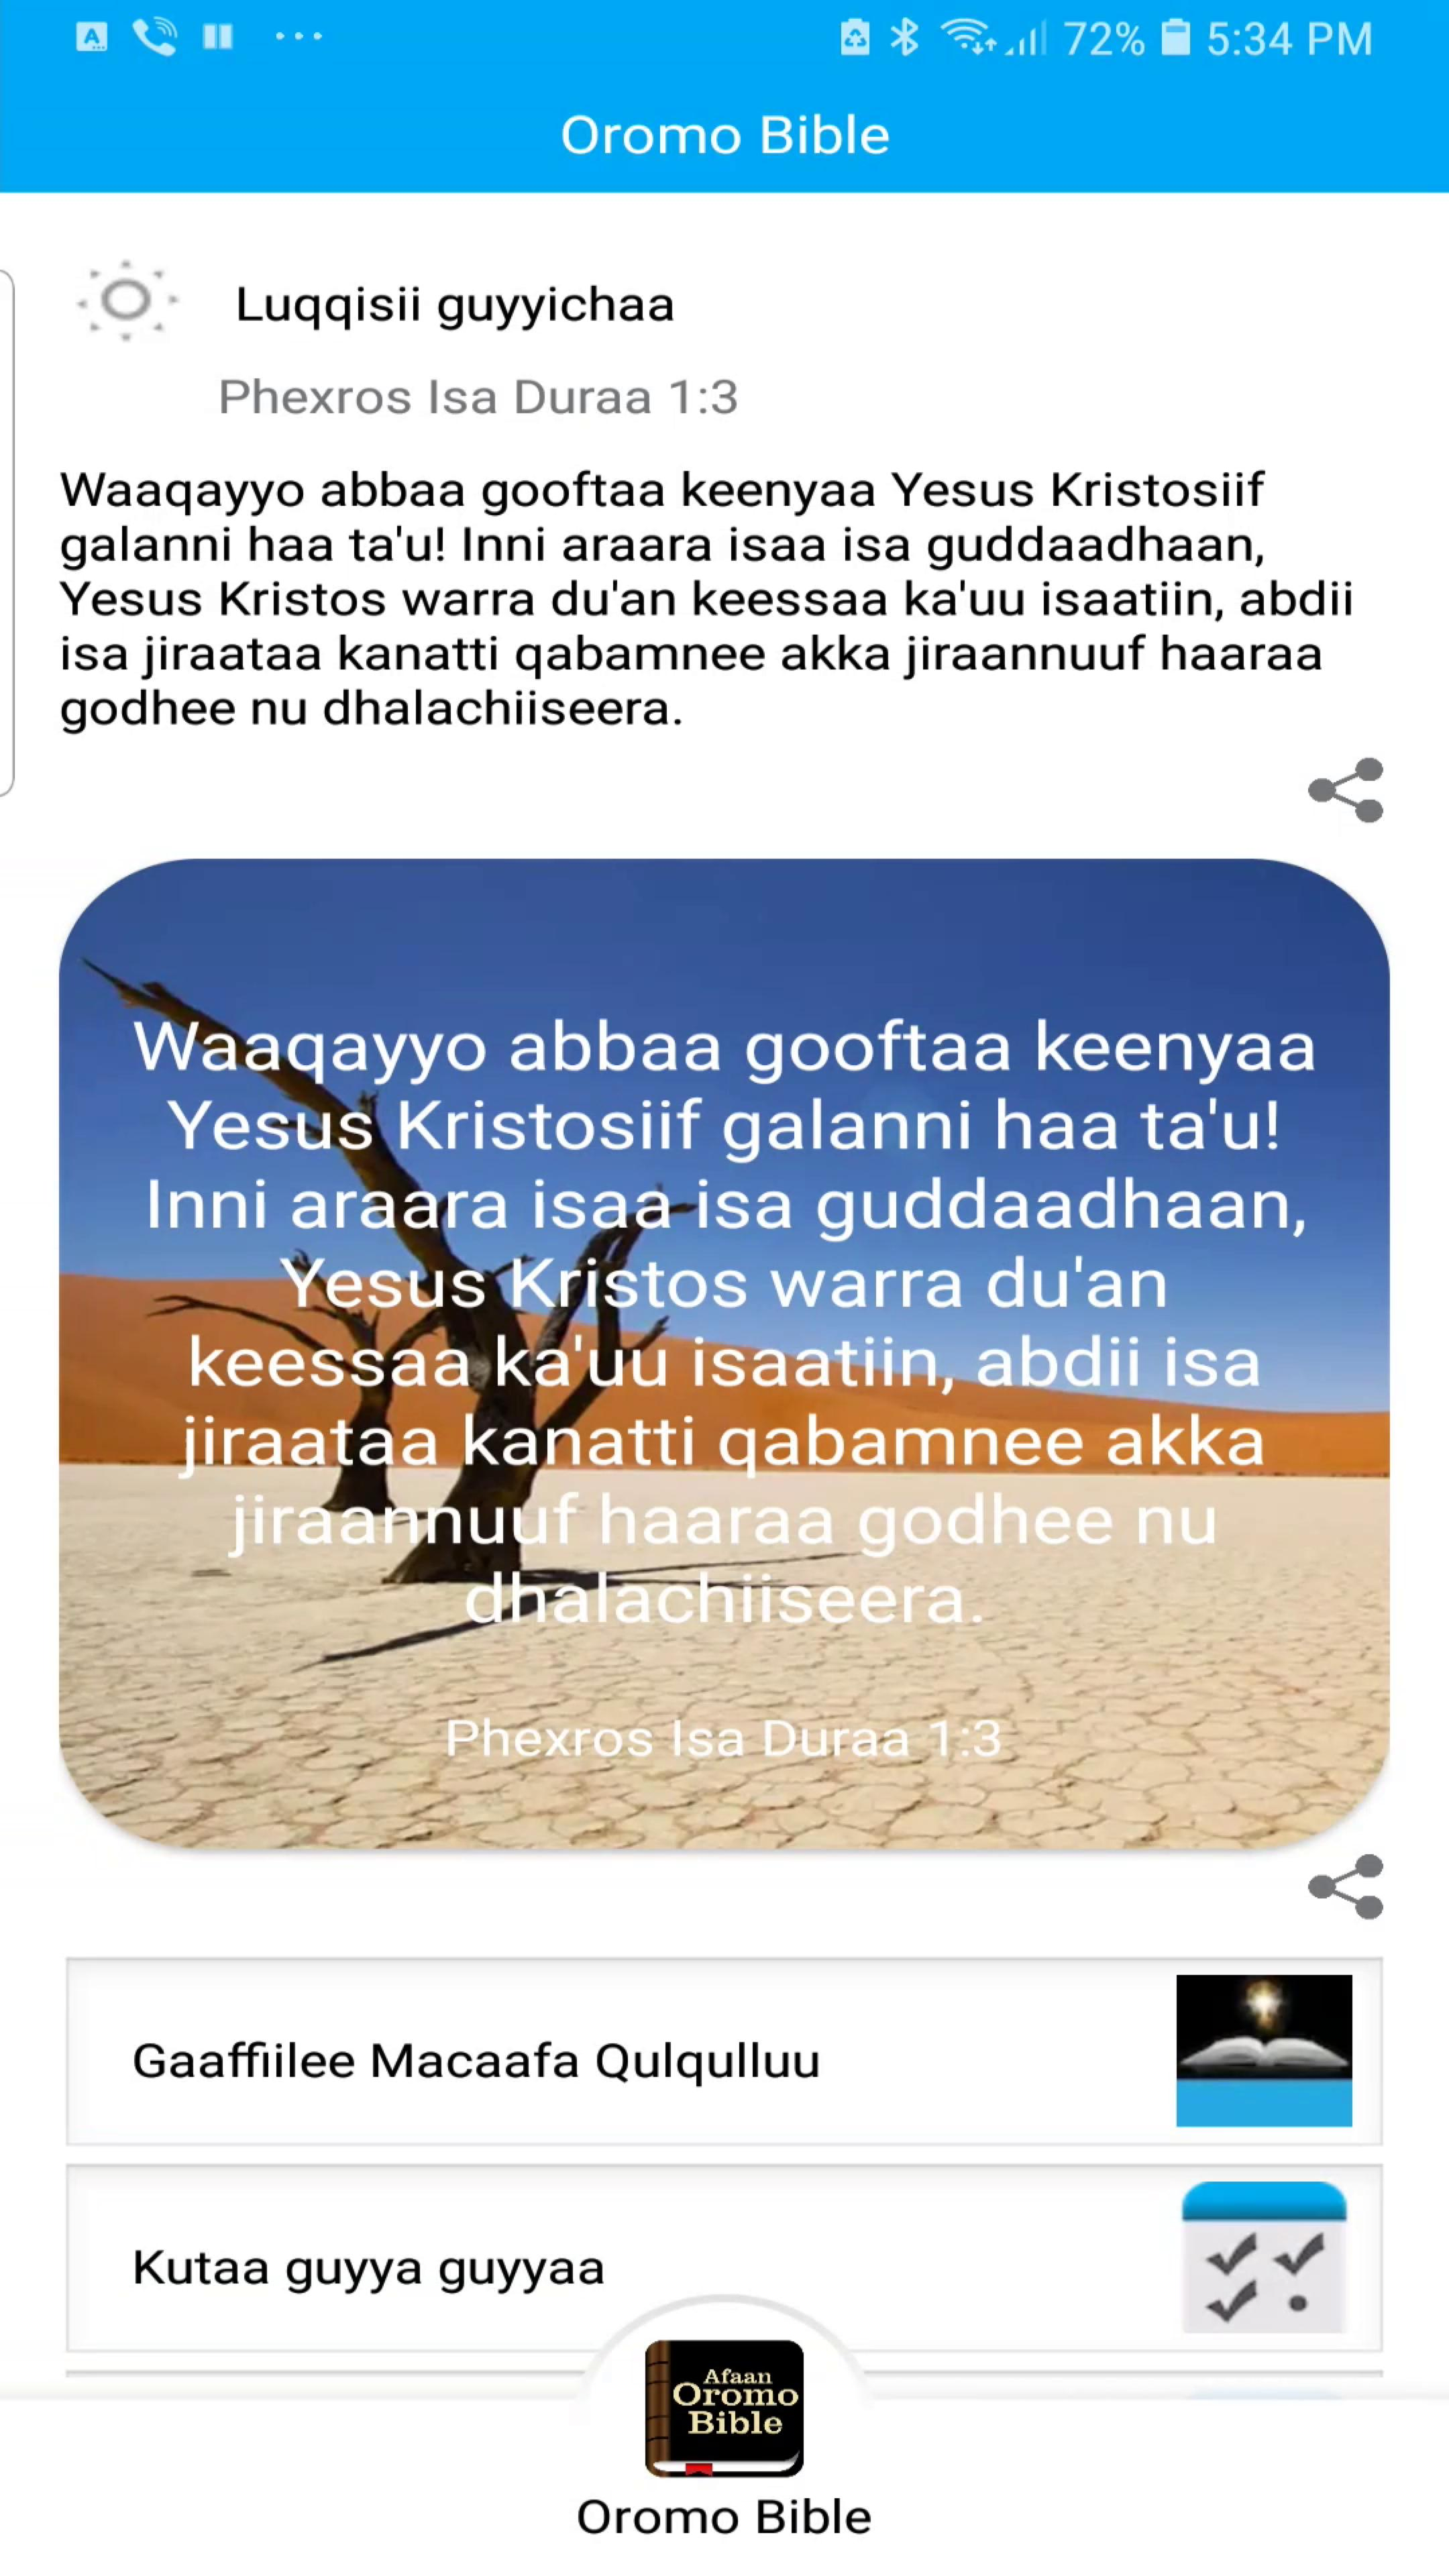 Oromo Bible for Android - APK Download